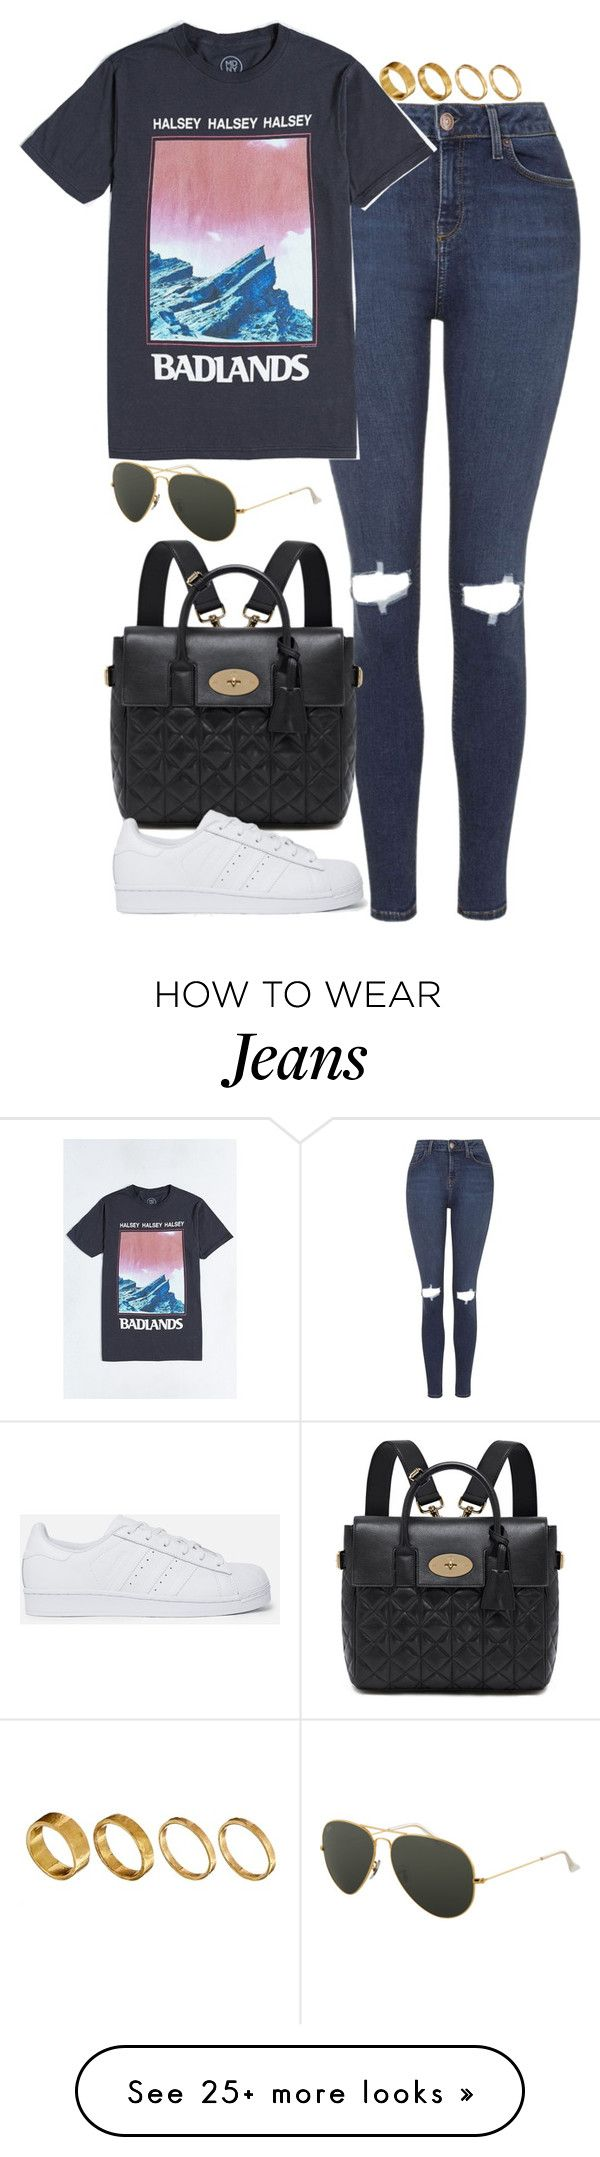 """Untitled #4868"" by eleanorsclosettt on Polyvore featuring moda, Topshop, Mulberry, adidas Originals, Ray-Ban y Made"